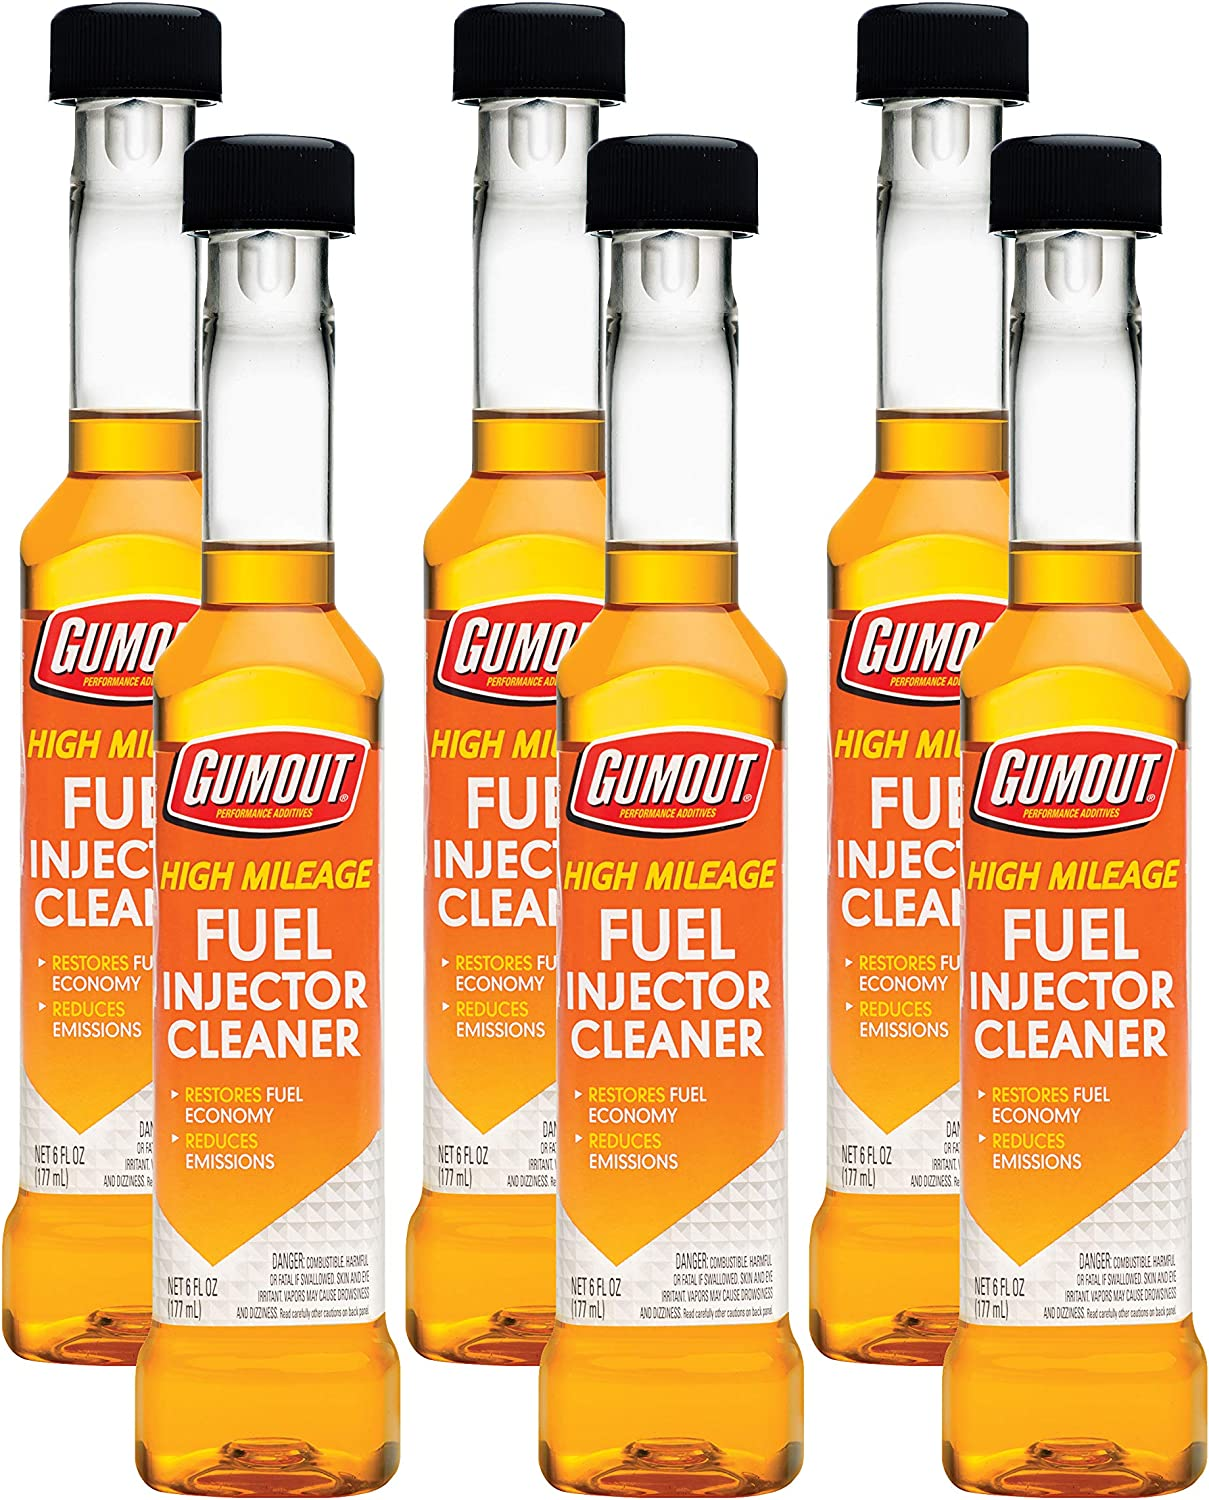 Gumout High-Mileage Fuel Injector Cleaner